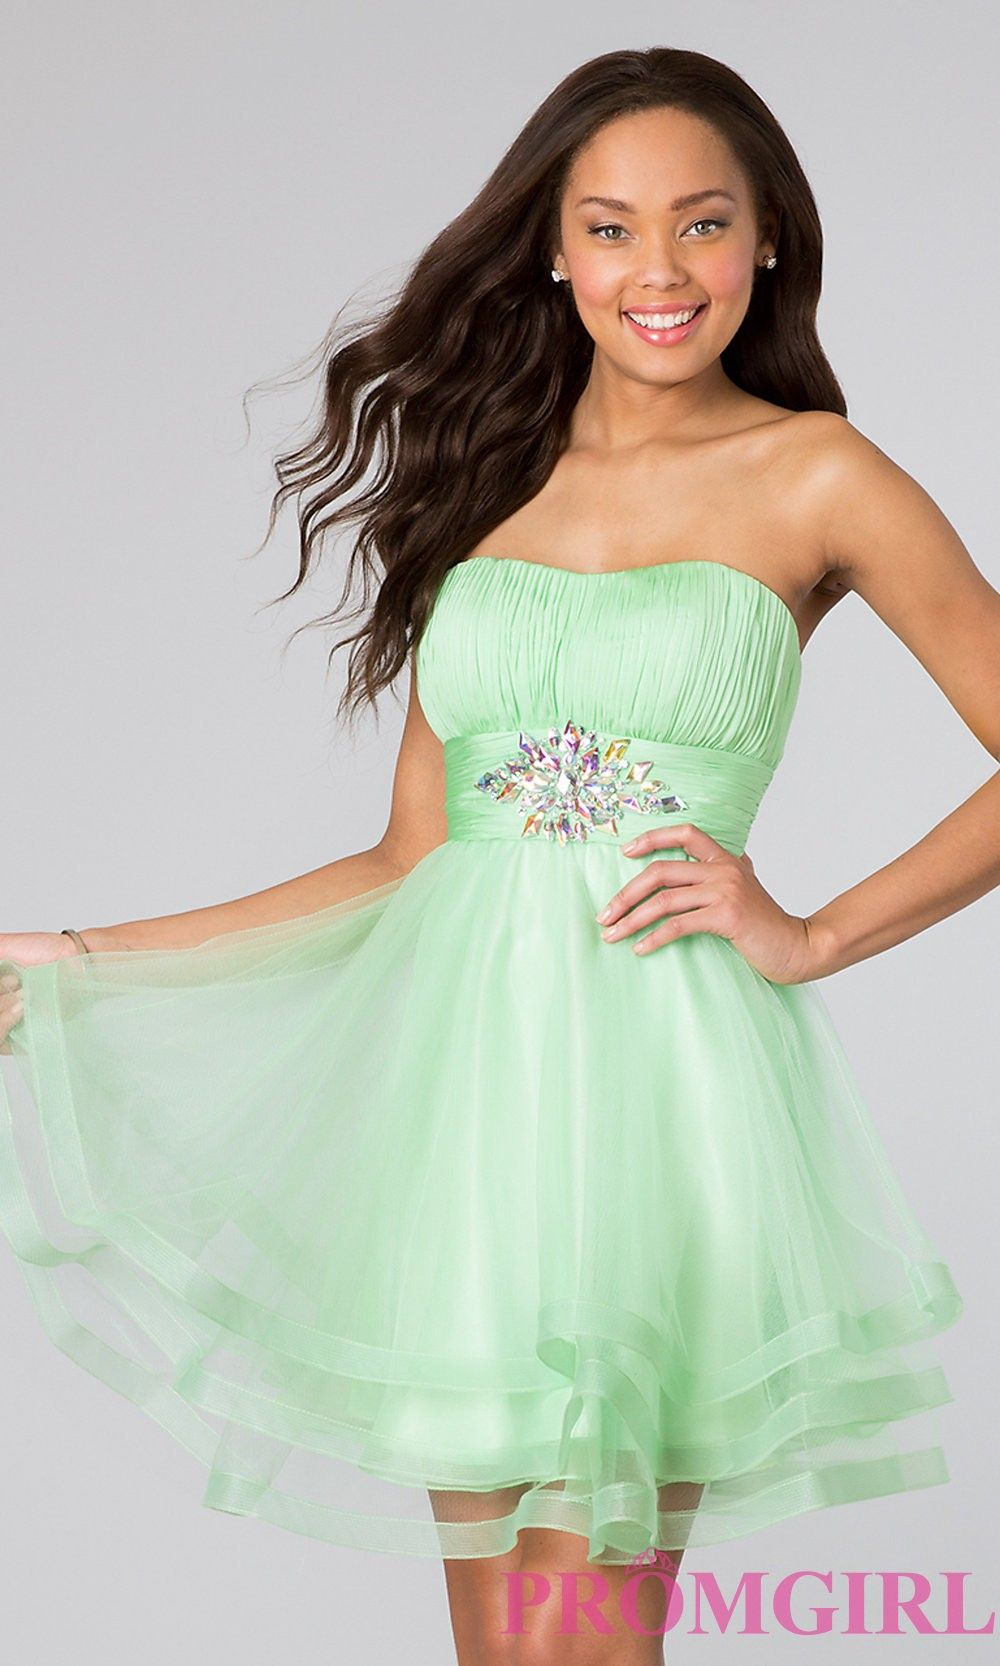 Short strapless babydoll dress from